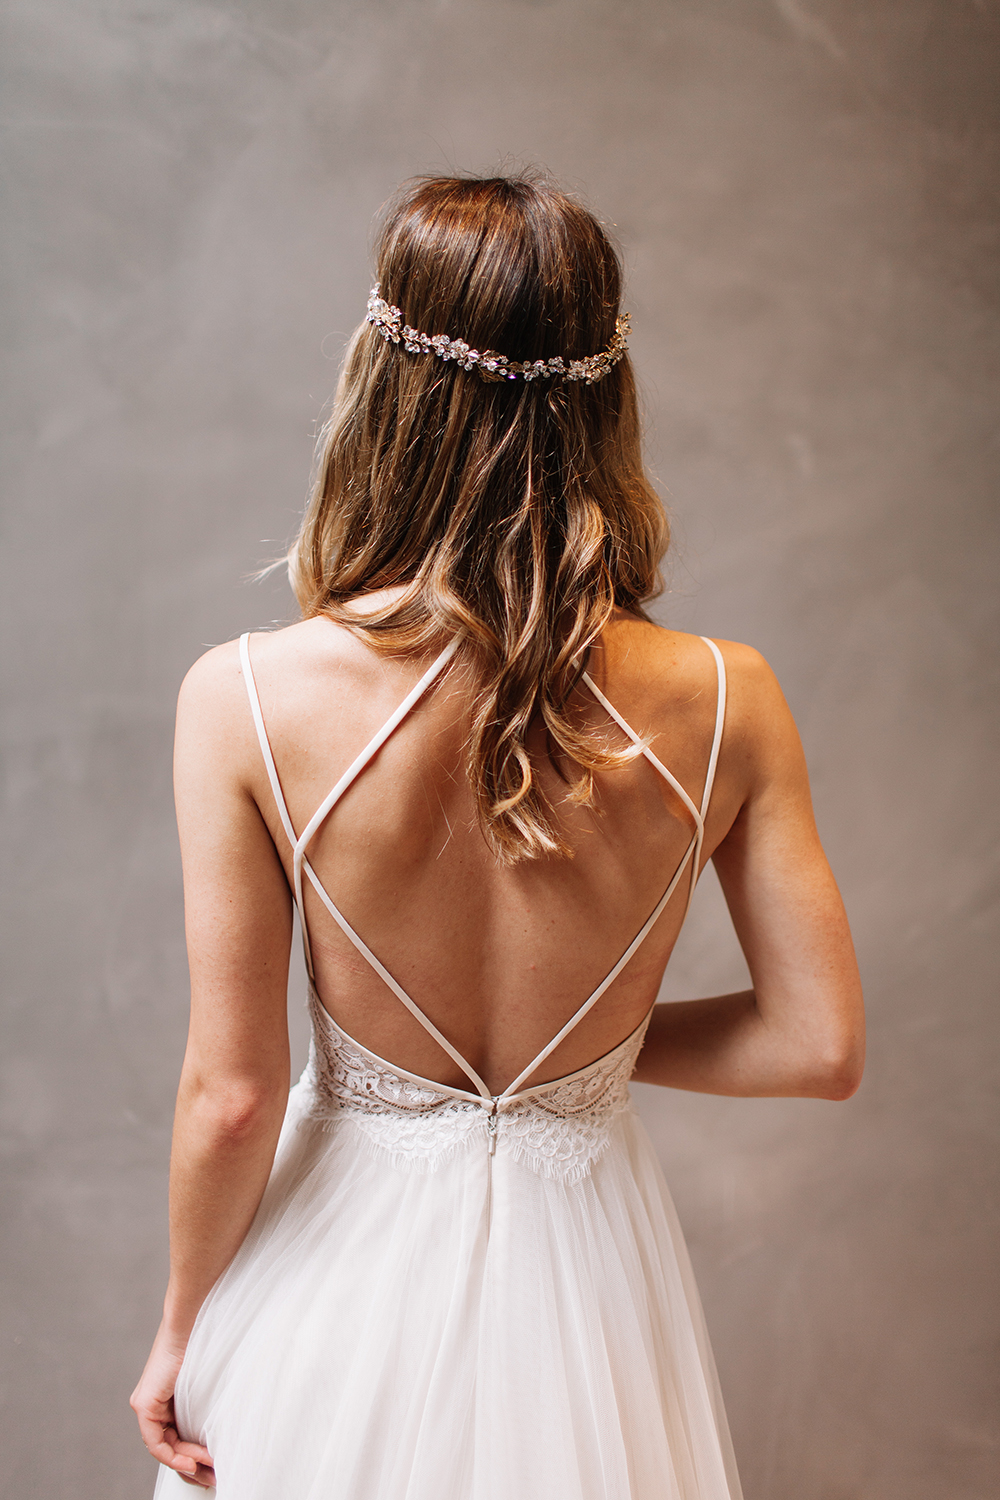 livvyland-blog-bhldn-store-front-houston-texas-bridal-salon-wedding-dress-shopping-austin-texas-fashion-blogger-olivia-watson-kayla-snell-photography-headpiece-beaded-strappy-open-backless-back